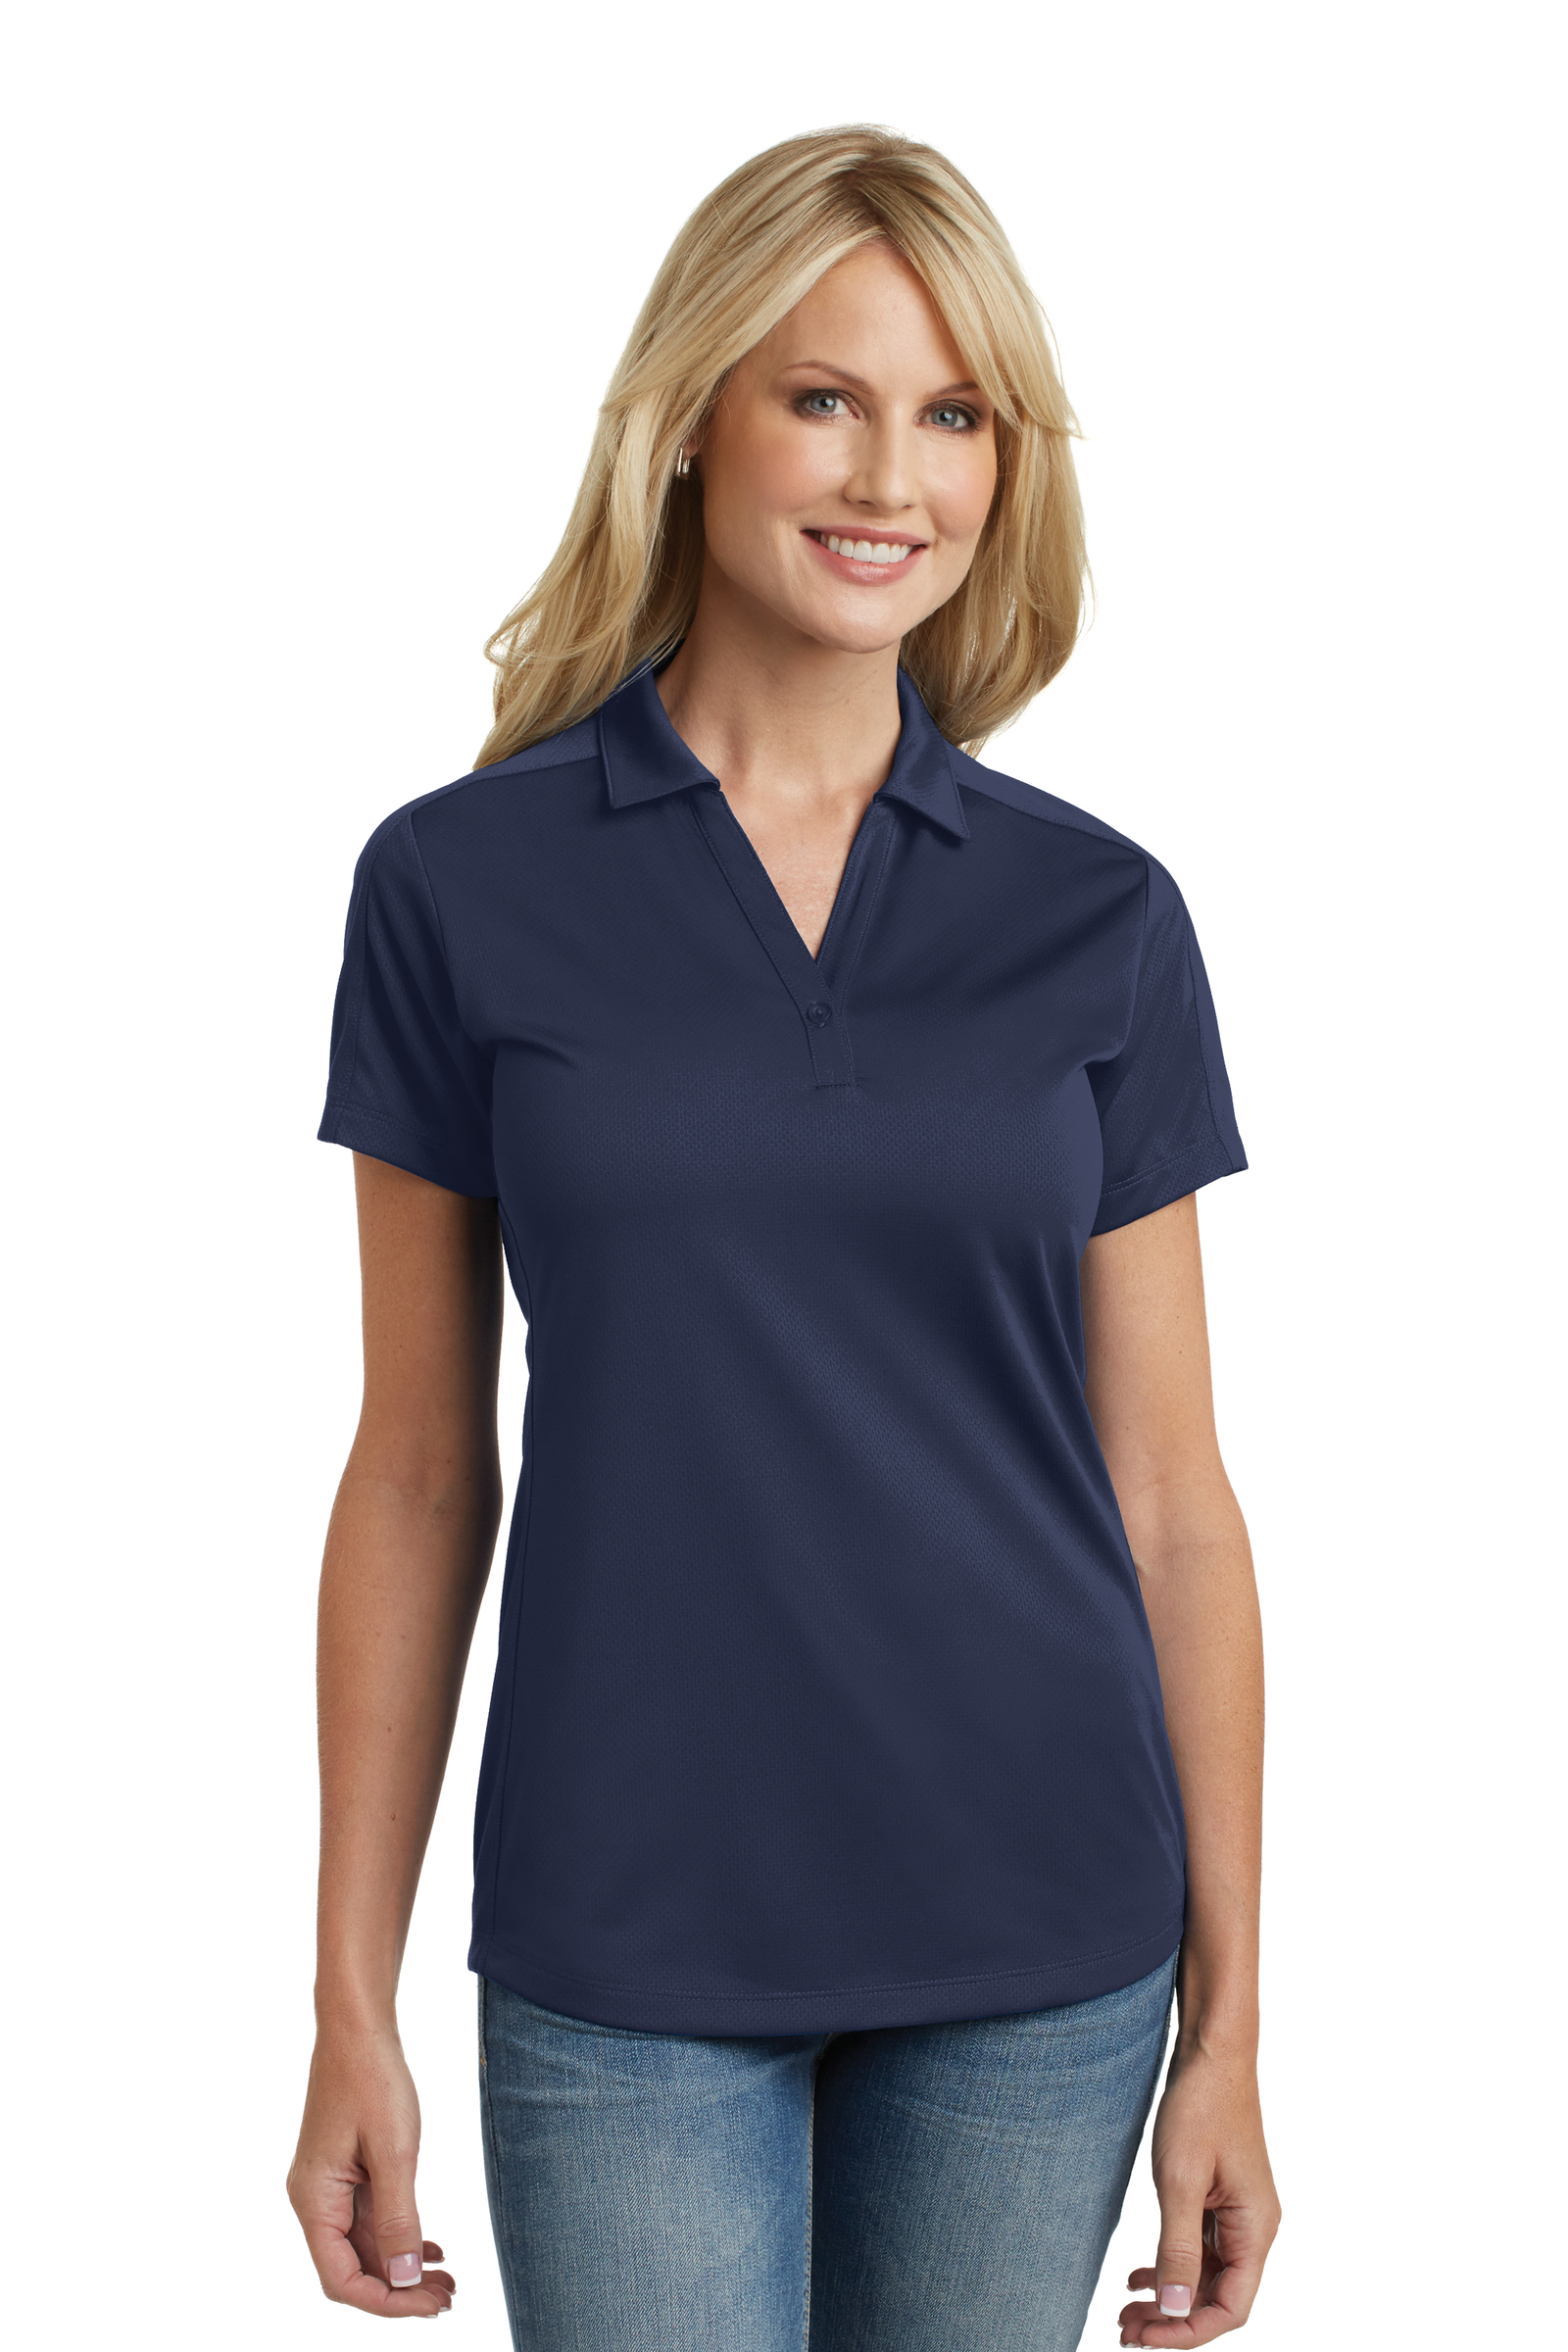 Port Authority Embroidered Women's Diamond Jacquard Polo